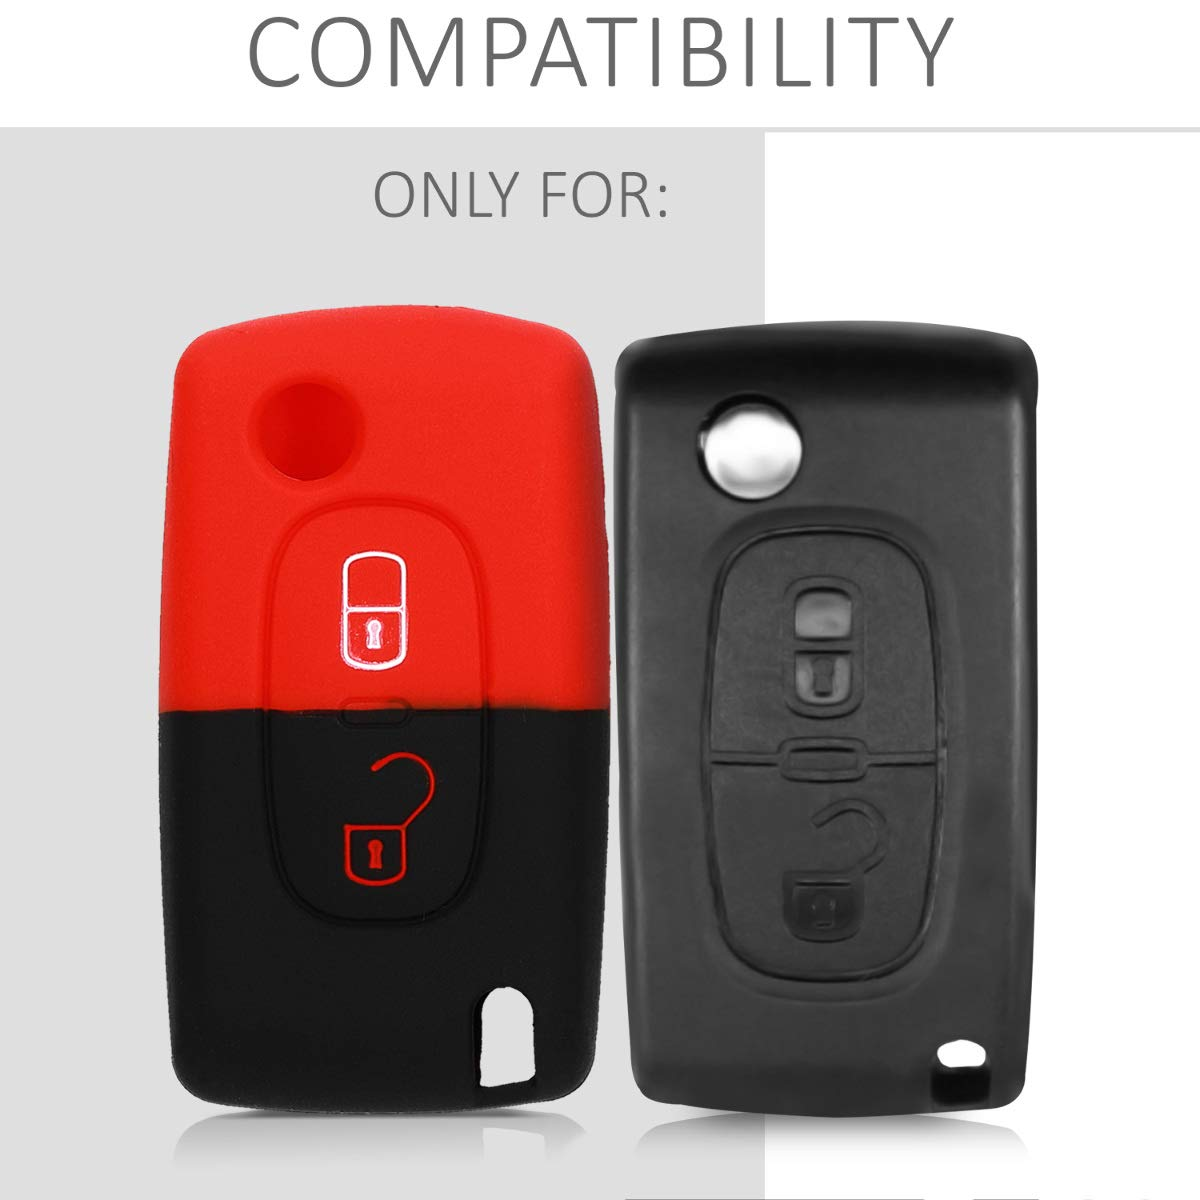 Black Silicone Protective Key Fob Cover for Peugeot Citroen 2 Button Car Flip Key kwmobile Car Key Cover for Peugeot Citroen